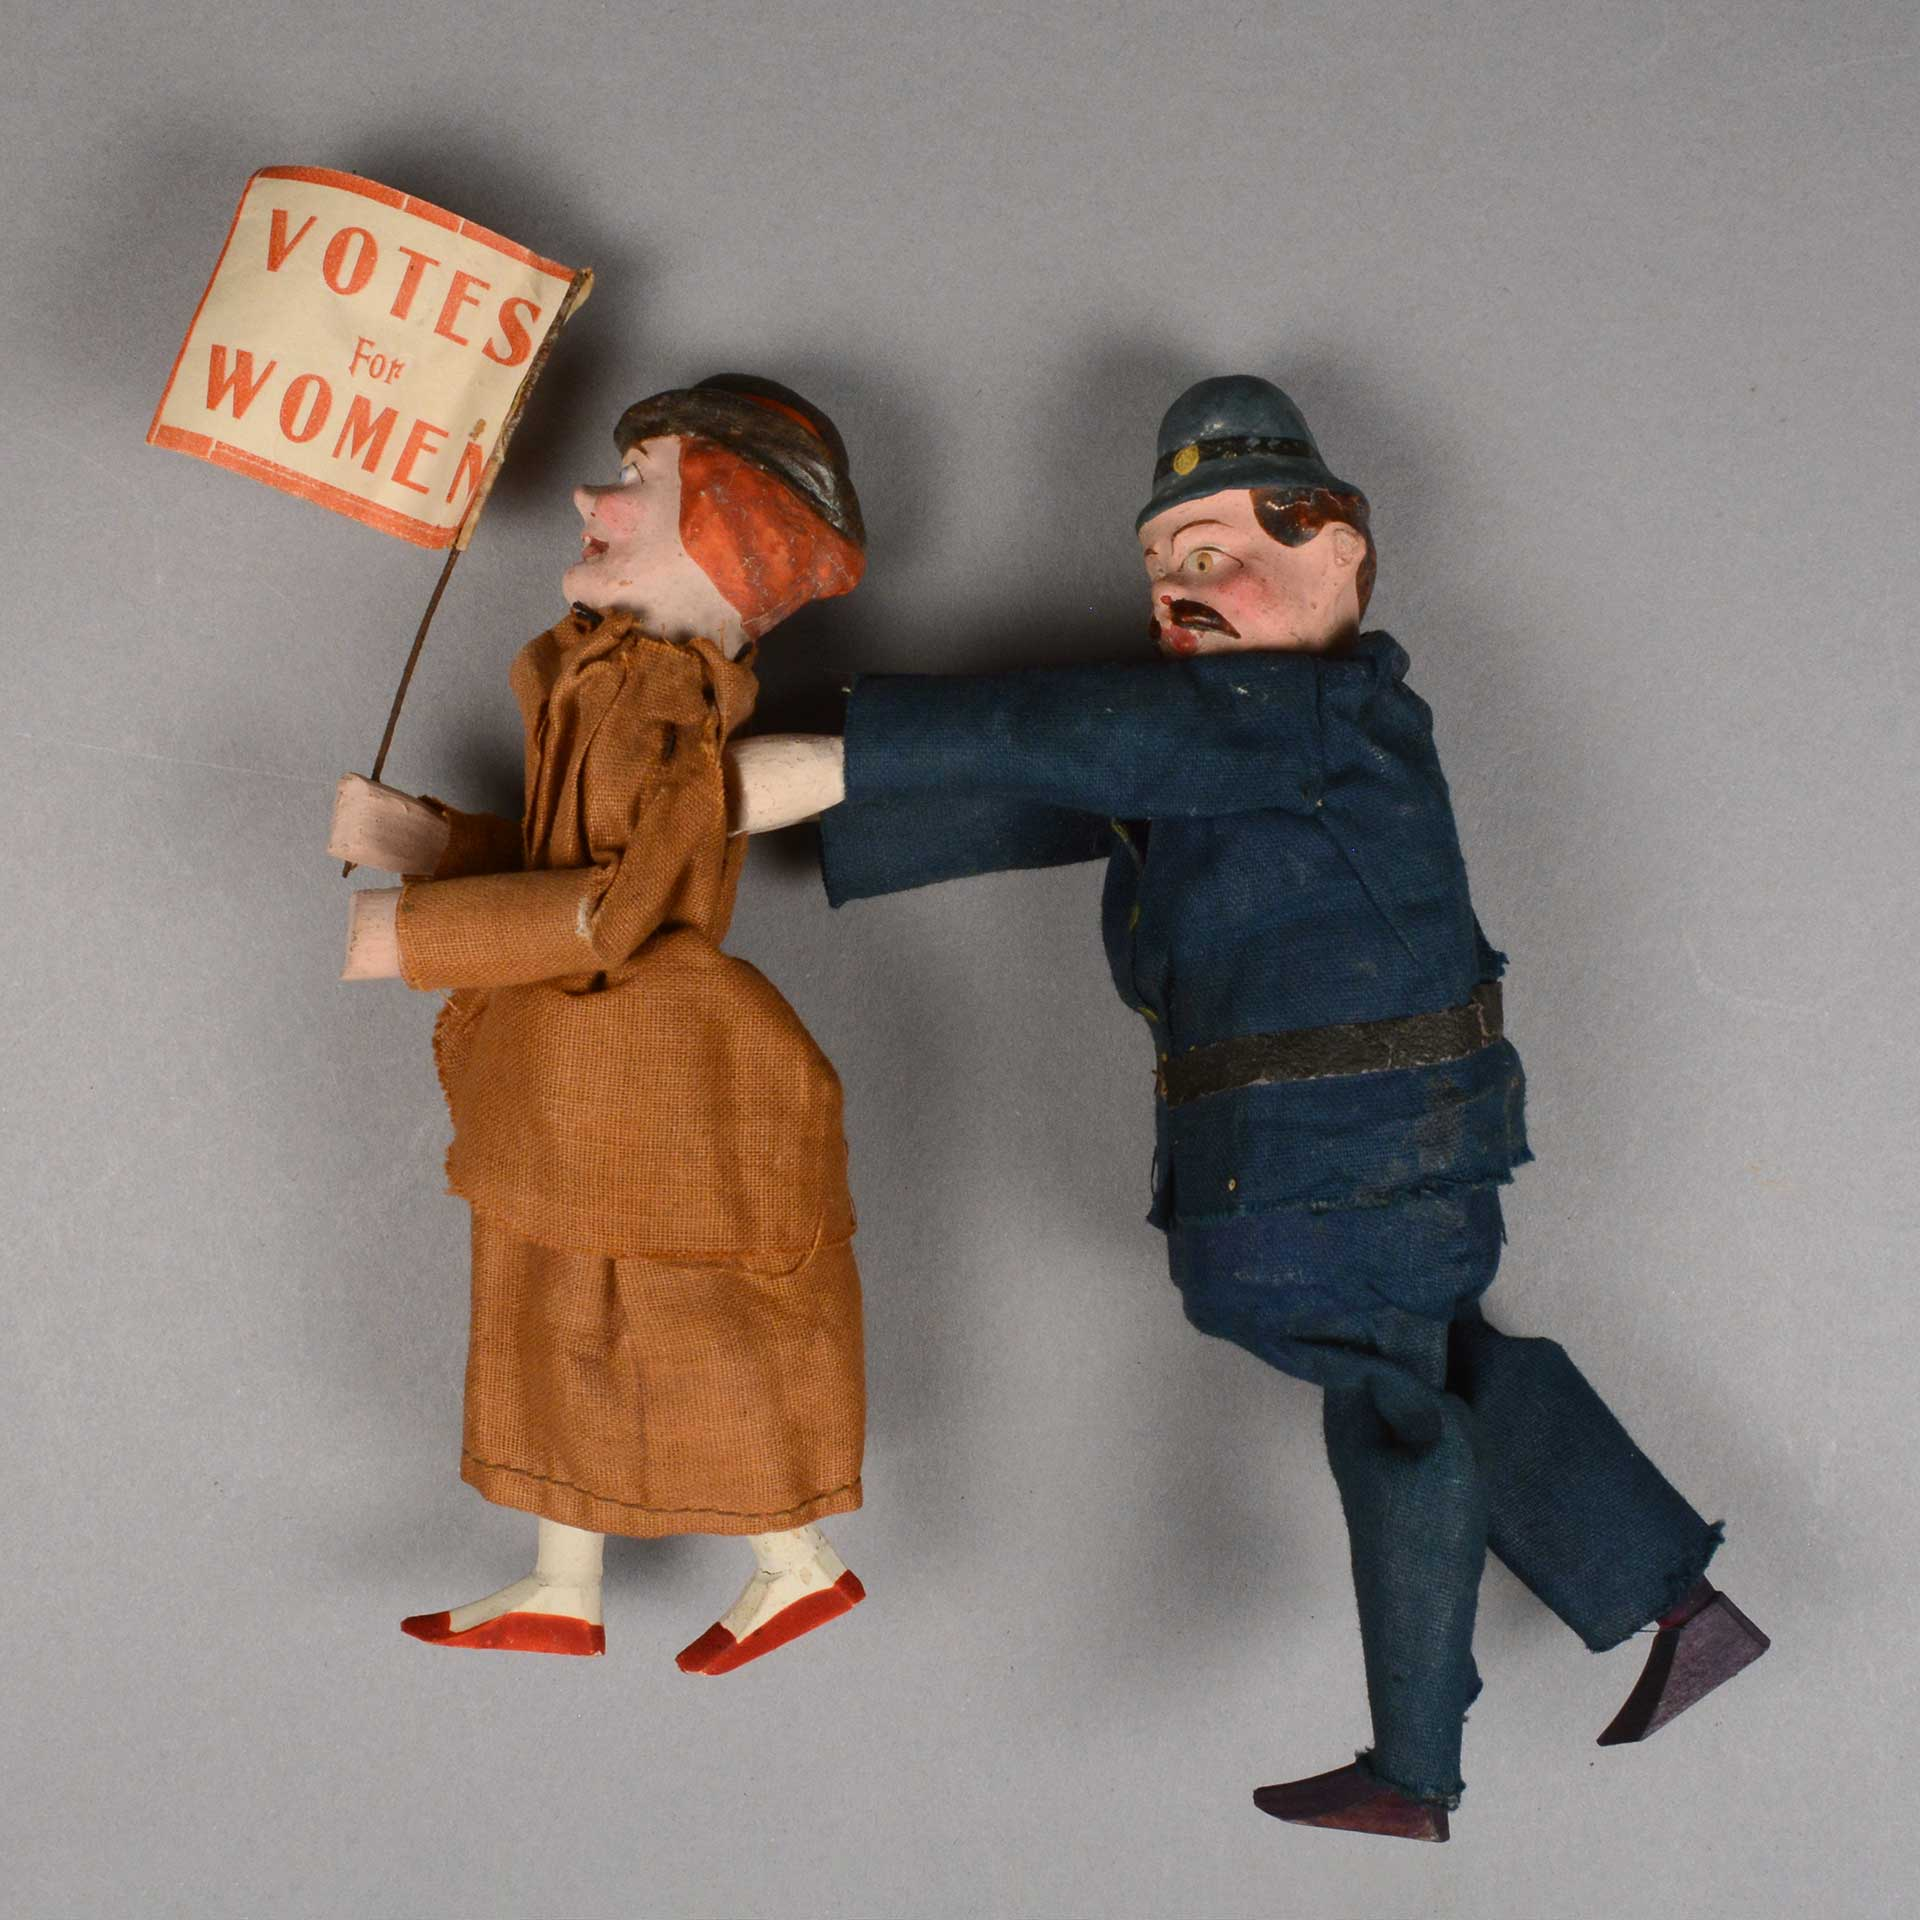 vintage figure of a police officer pushing a woman who has a flag that says Votes For Women in her hand